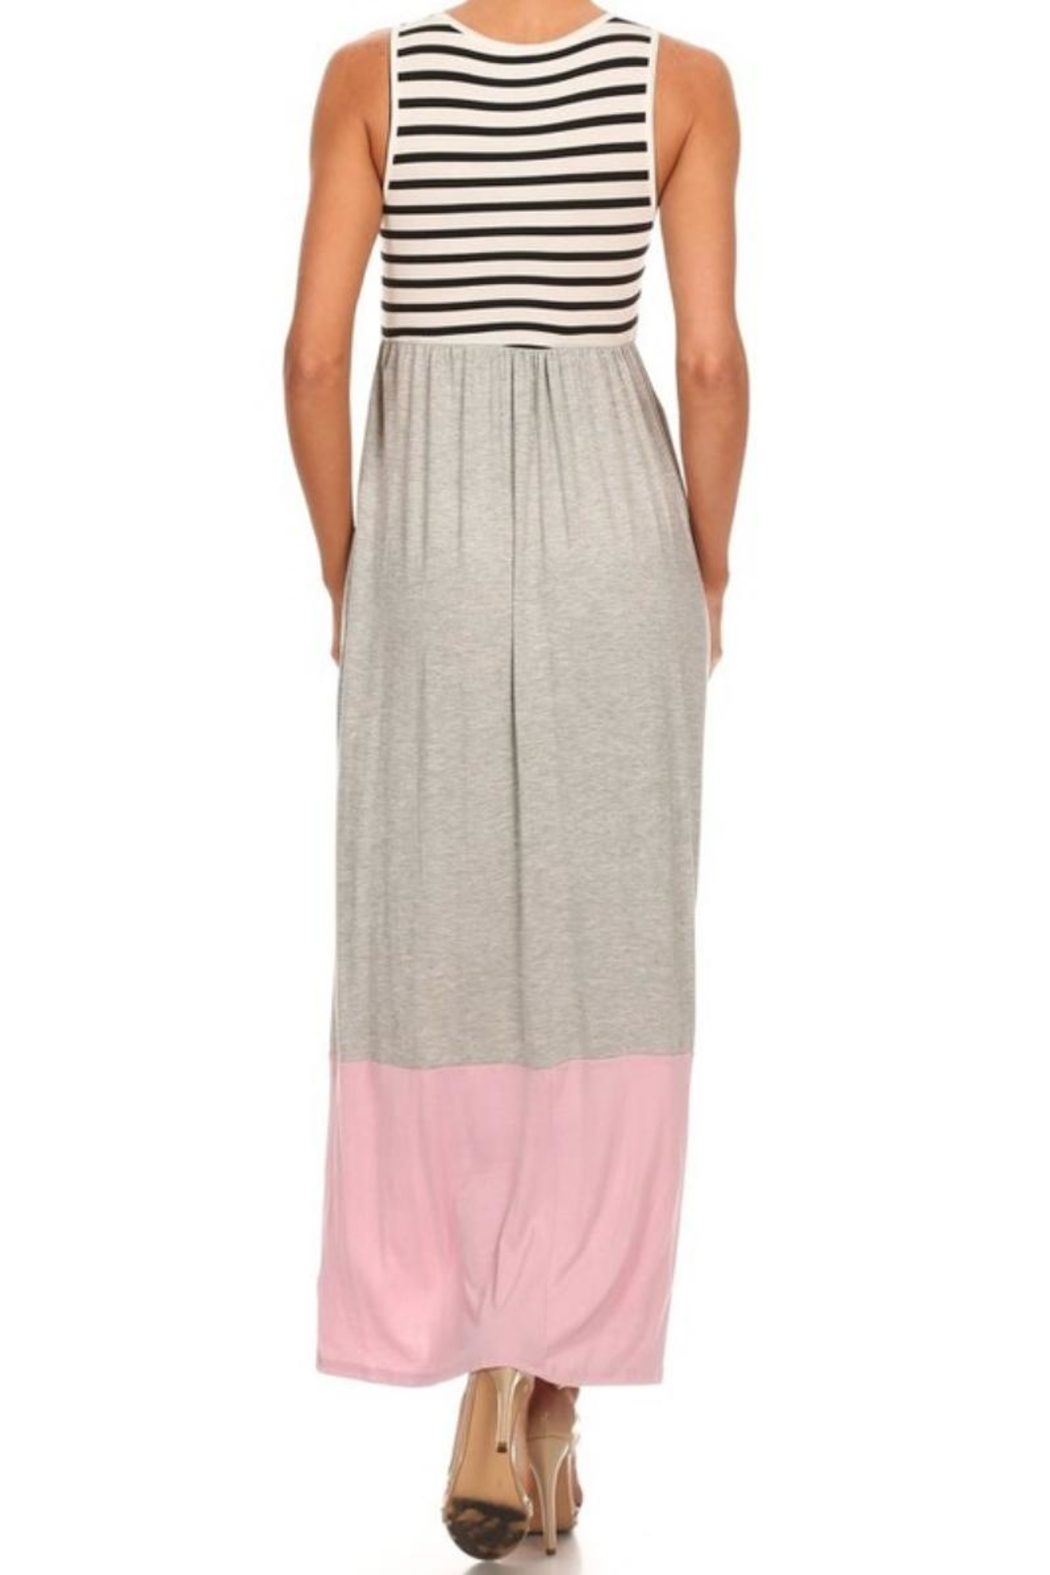 M USA Stripe/colorblock Jersey-Knit Maxidress - Front Full Image